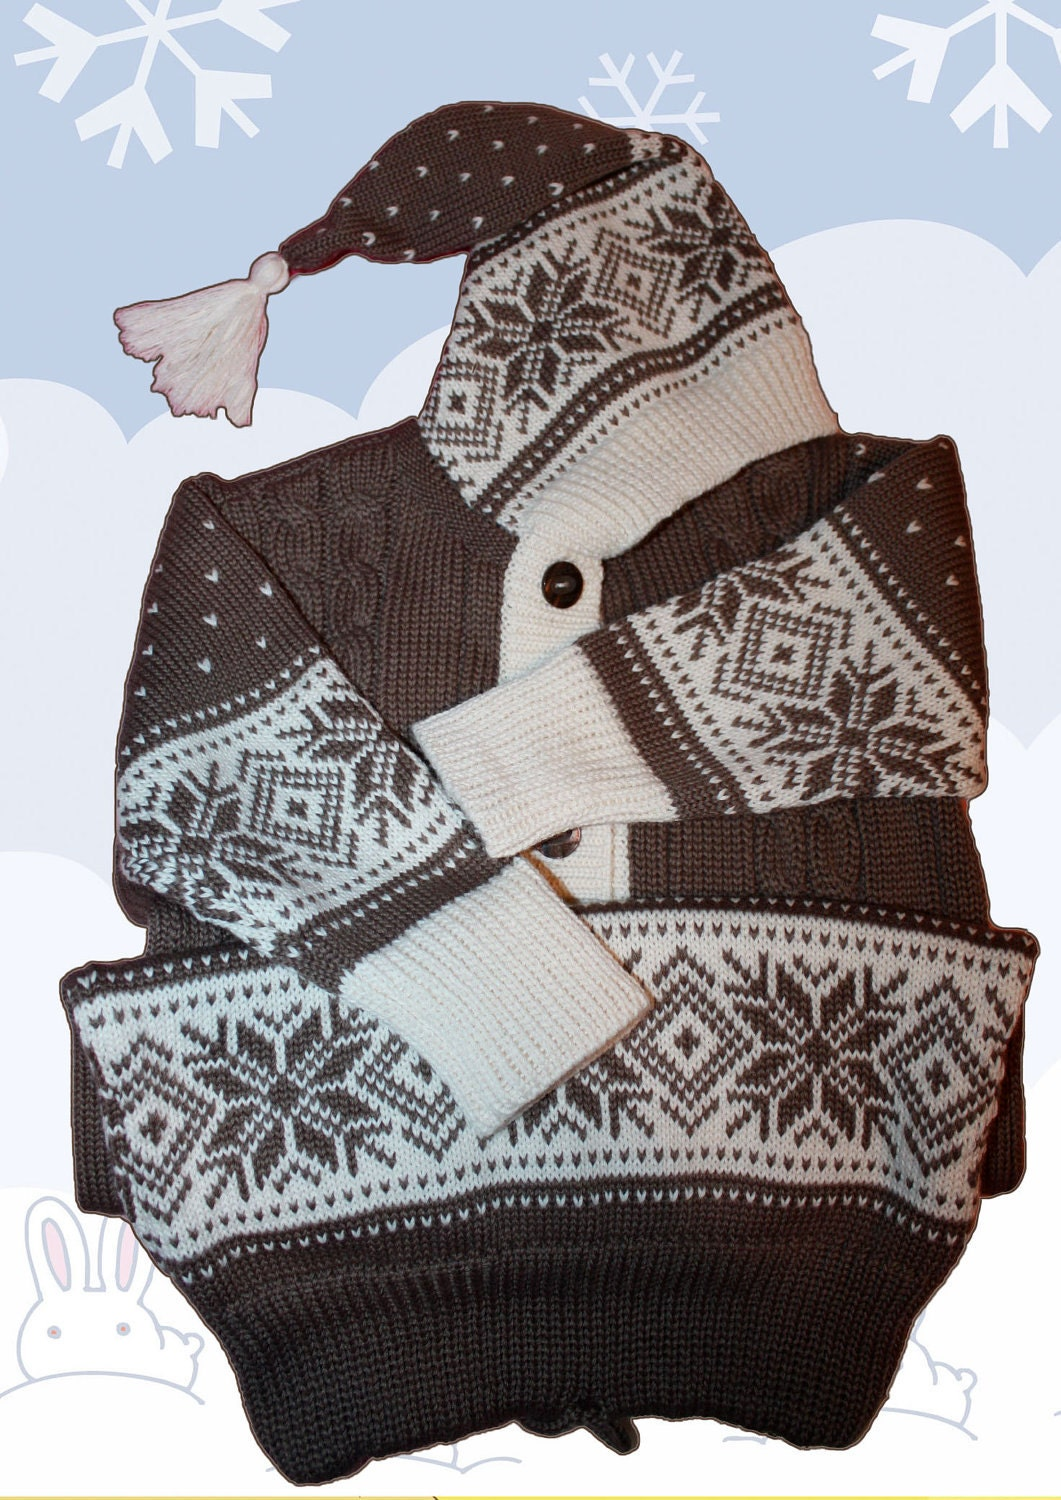 Knitted Baby Bunting Bag Pattern : 3-12 months. Fair Isle Jacquard Knitted BABY BUNTING by ...